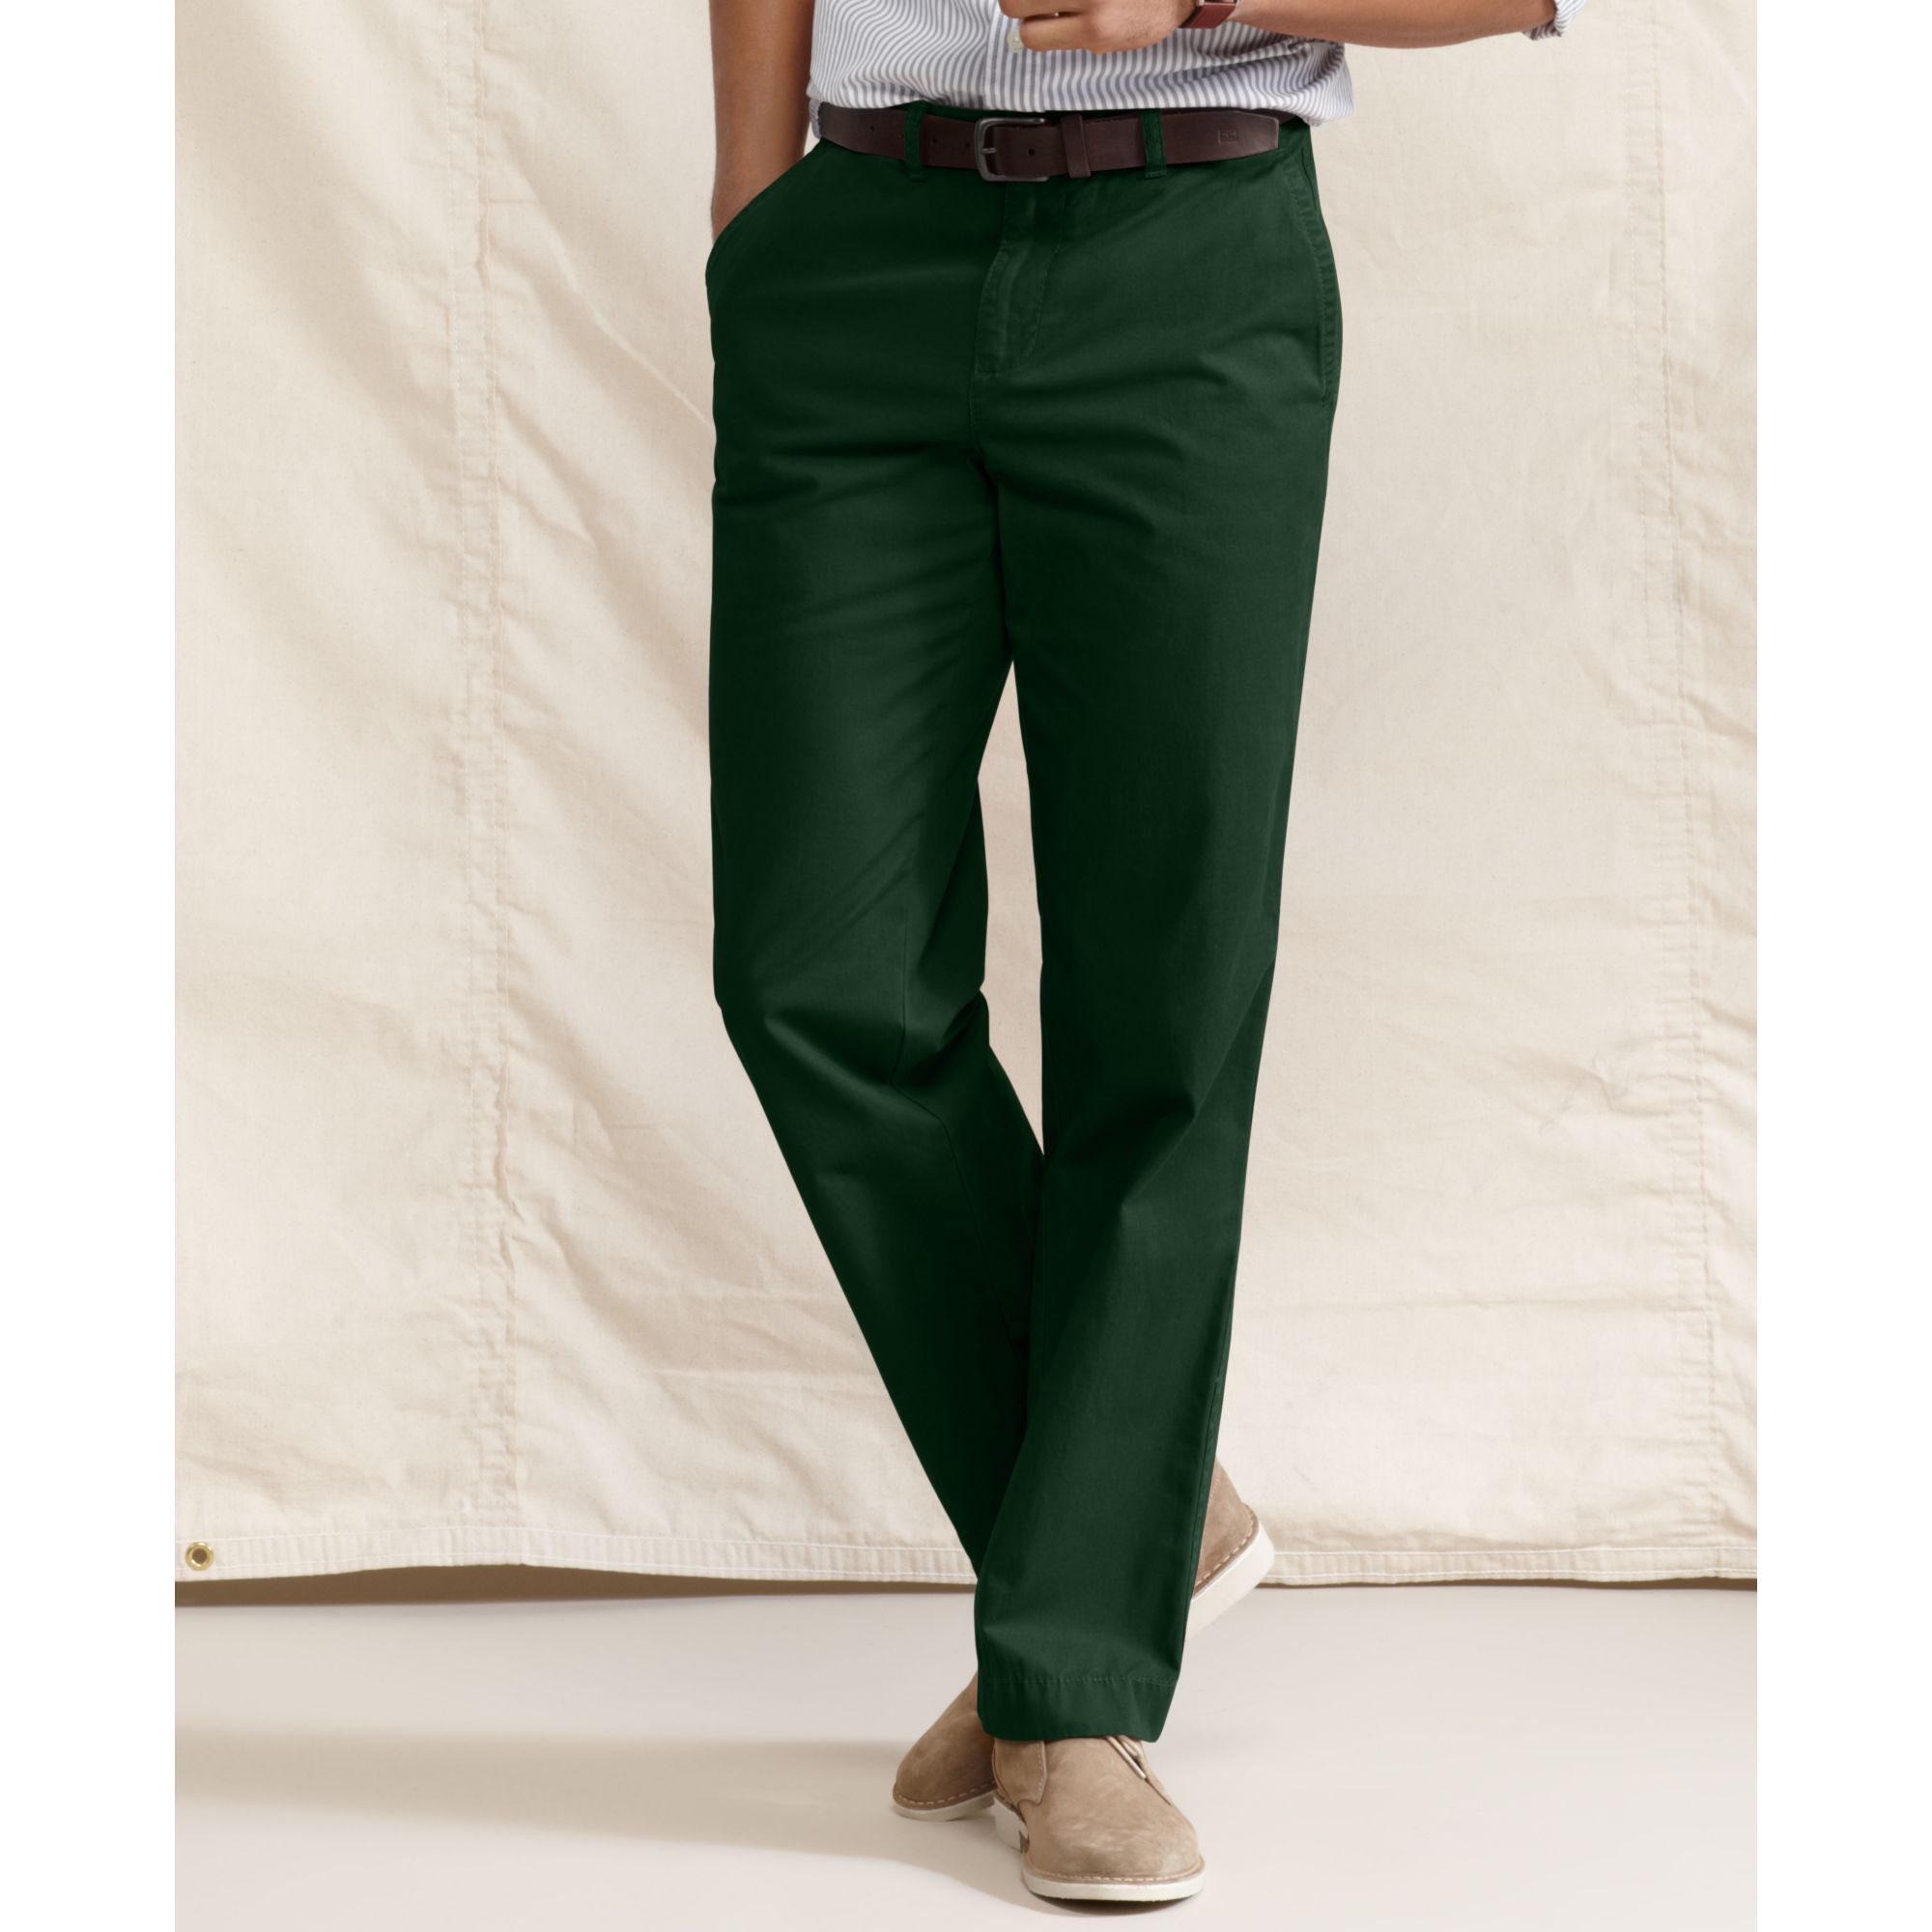 b9dd63611 Tommy Hilfiger Graduate Slim Fit Chino Pants in Green for Men - Lyst